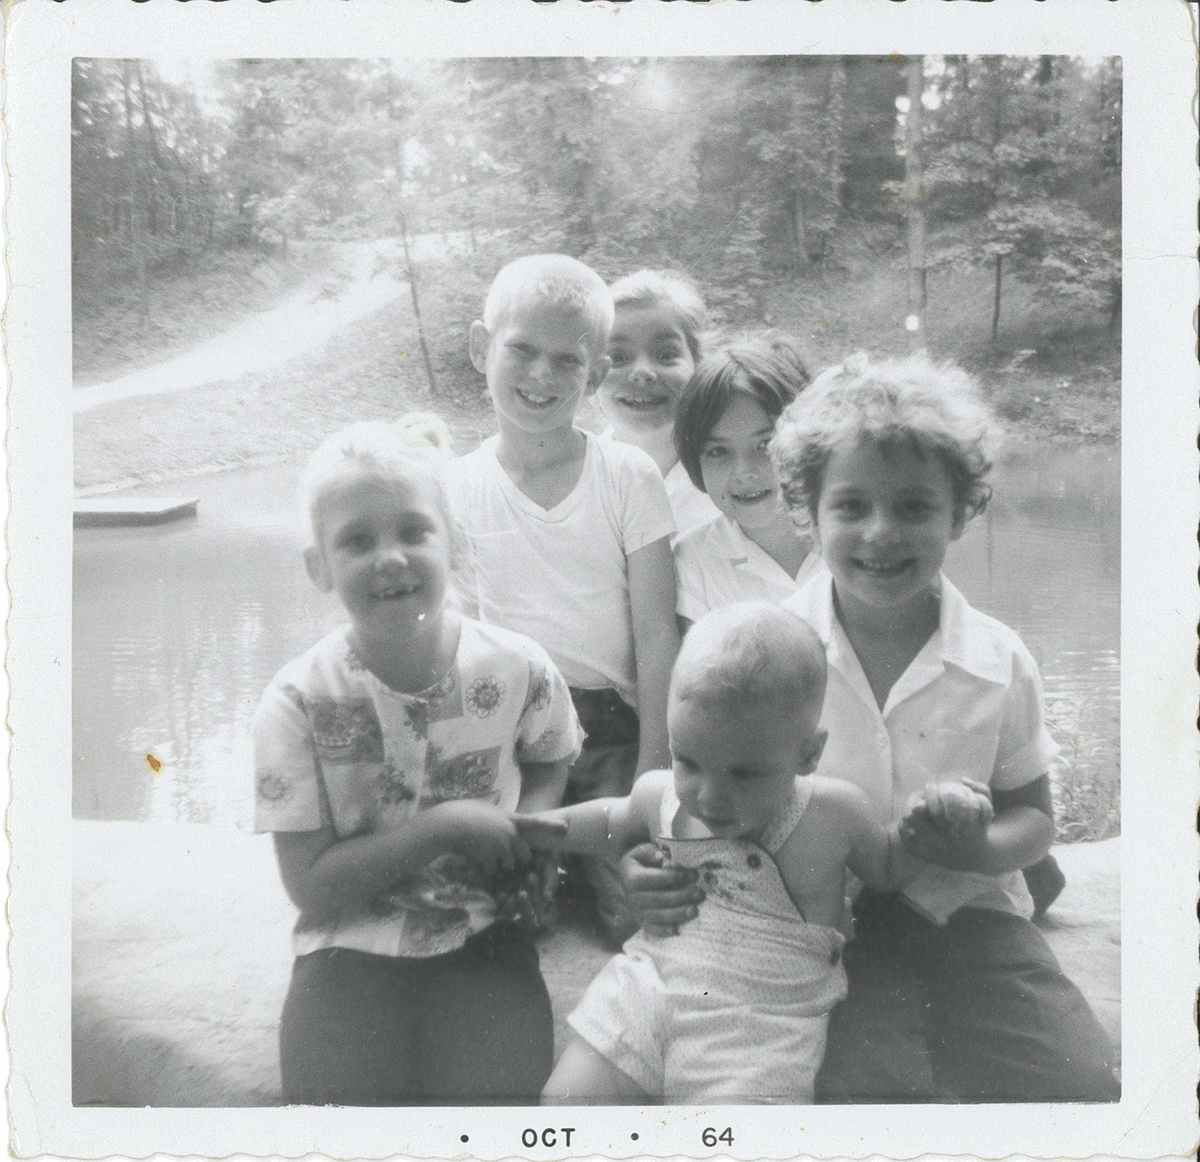 """From the back of the photograph: """"Taken the last day of school June – 64. Terri and Barry Andrews. Patience, Francie, Erin(?) and Danny at the Pond on Miller Property later Meadowcroft Village."""" The blacksmith shop, still there today, would be finished that July on the hill directly across the pond."""